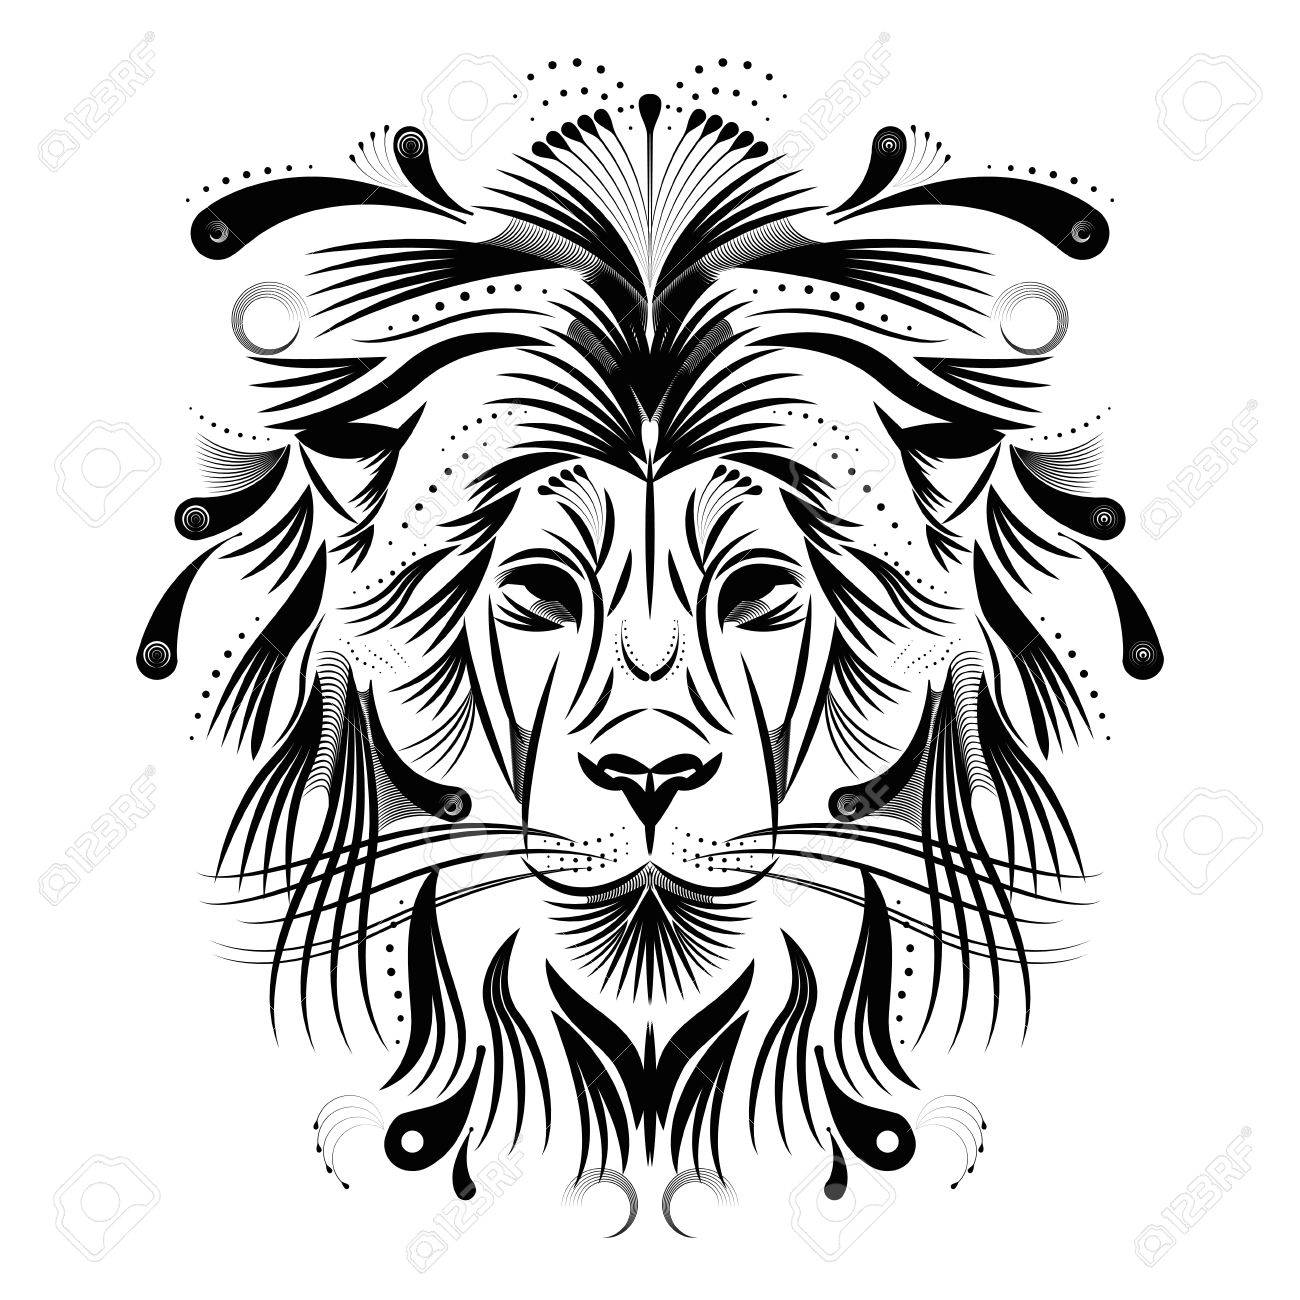 Isolated Outline Of A Lion Face Vector Illustration Royalty Free Cliparts Vectors And Stock Illustration Image 83219517 Polish your personal project or design with these lion face transparent png images, make it even more personalized and more attractive. isolated outline of a lion face vector illustration